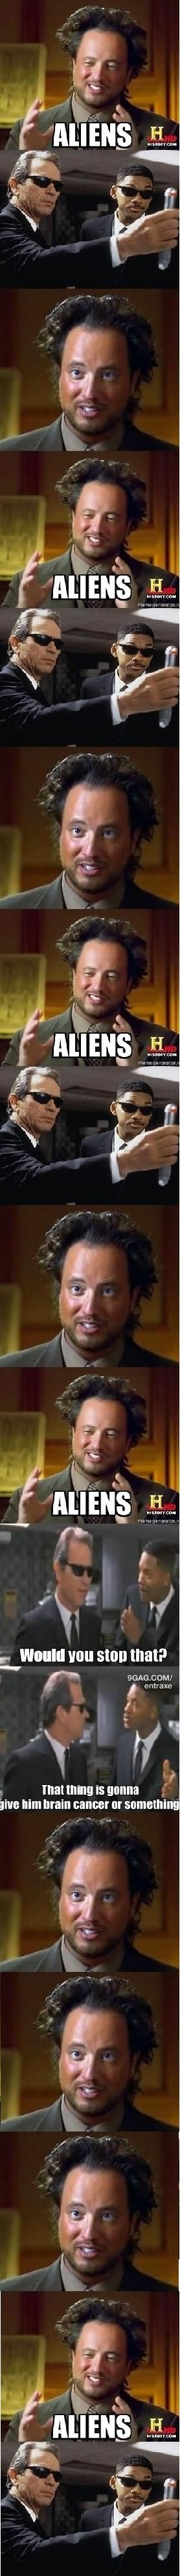 I love this crazy guy!  Ancient Aliens! @Daniel Morgan Morgan Dunworth